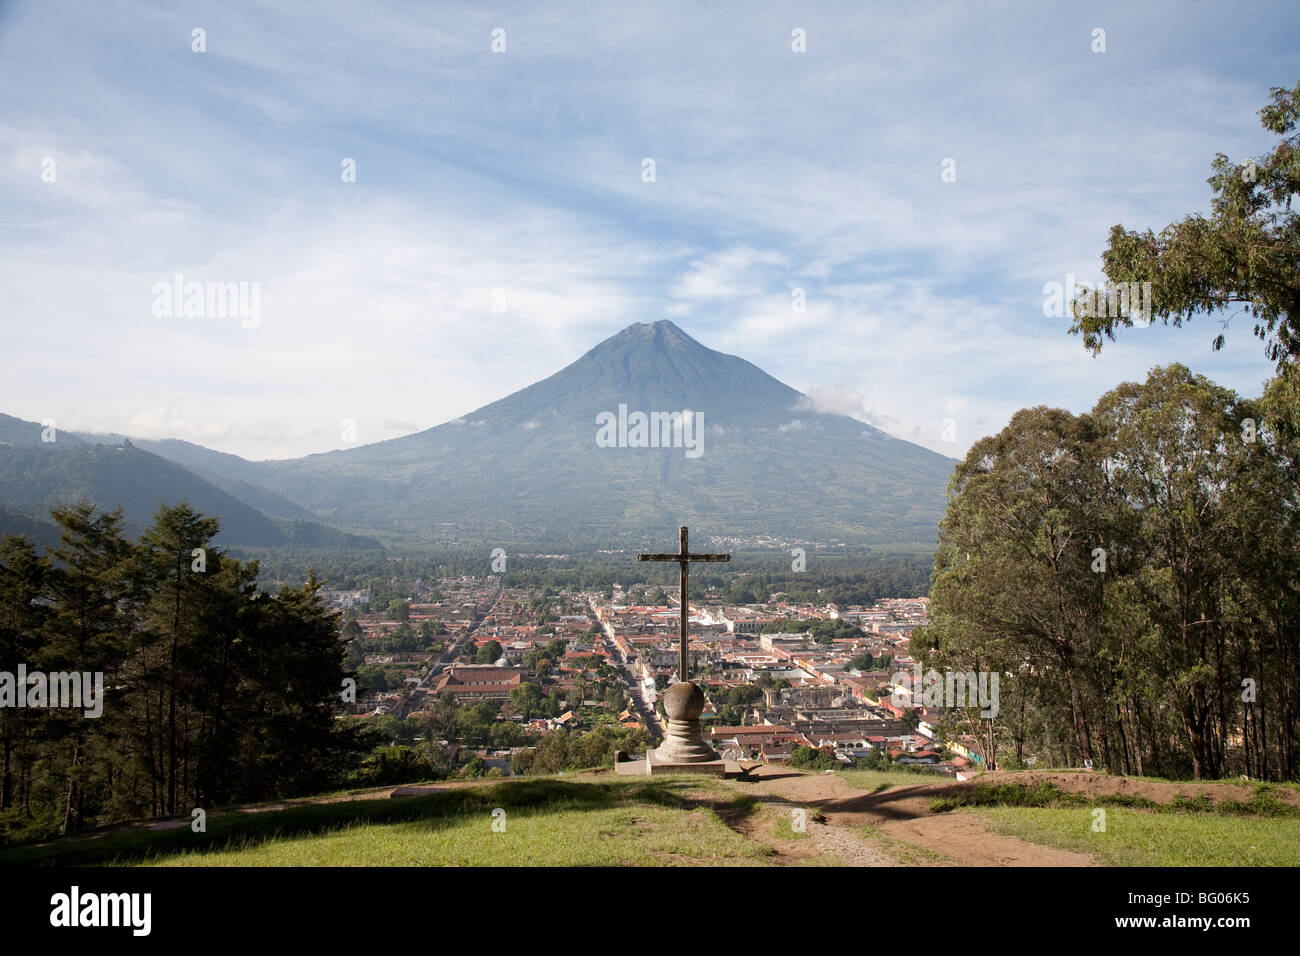 Volcan Agua and the landmark Cerro de la Cruz viewpoint and view over Antigua Guatemala. - Stock Image